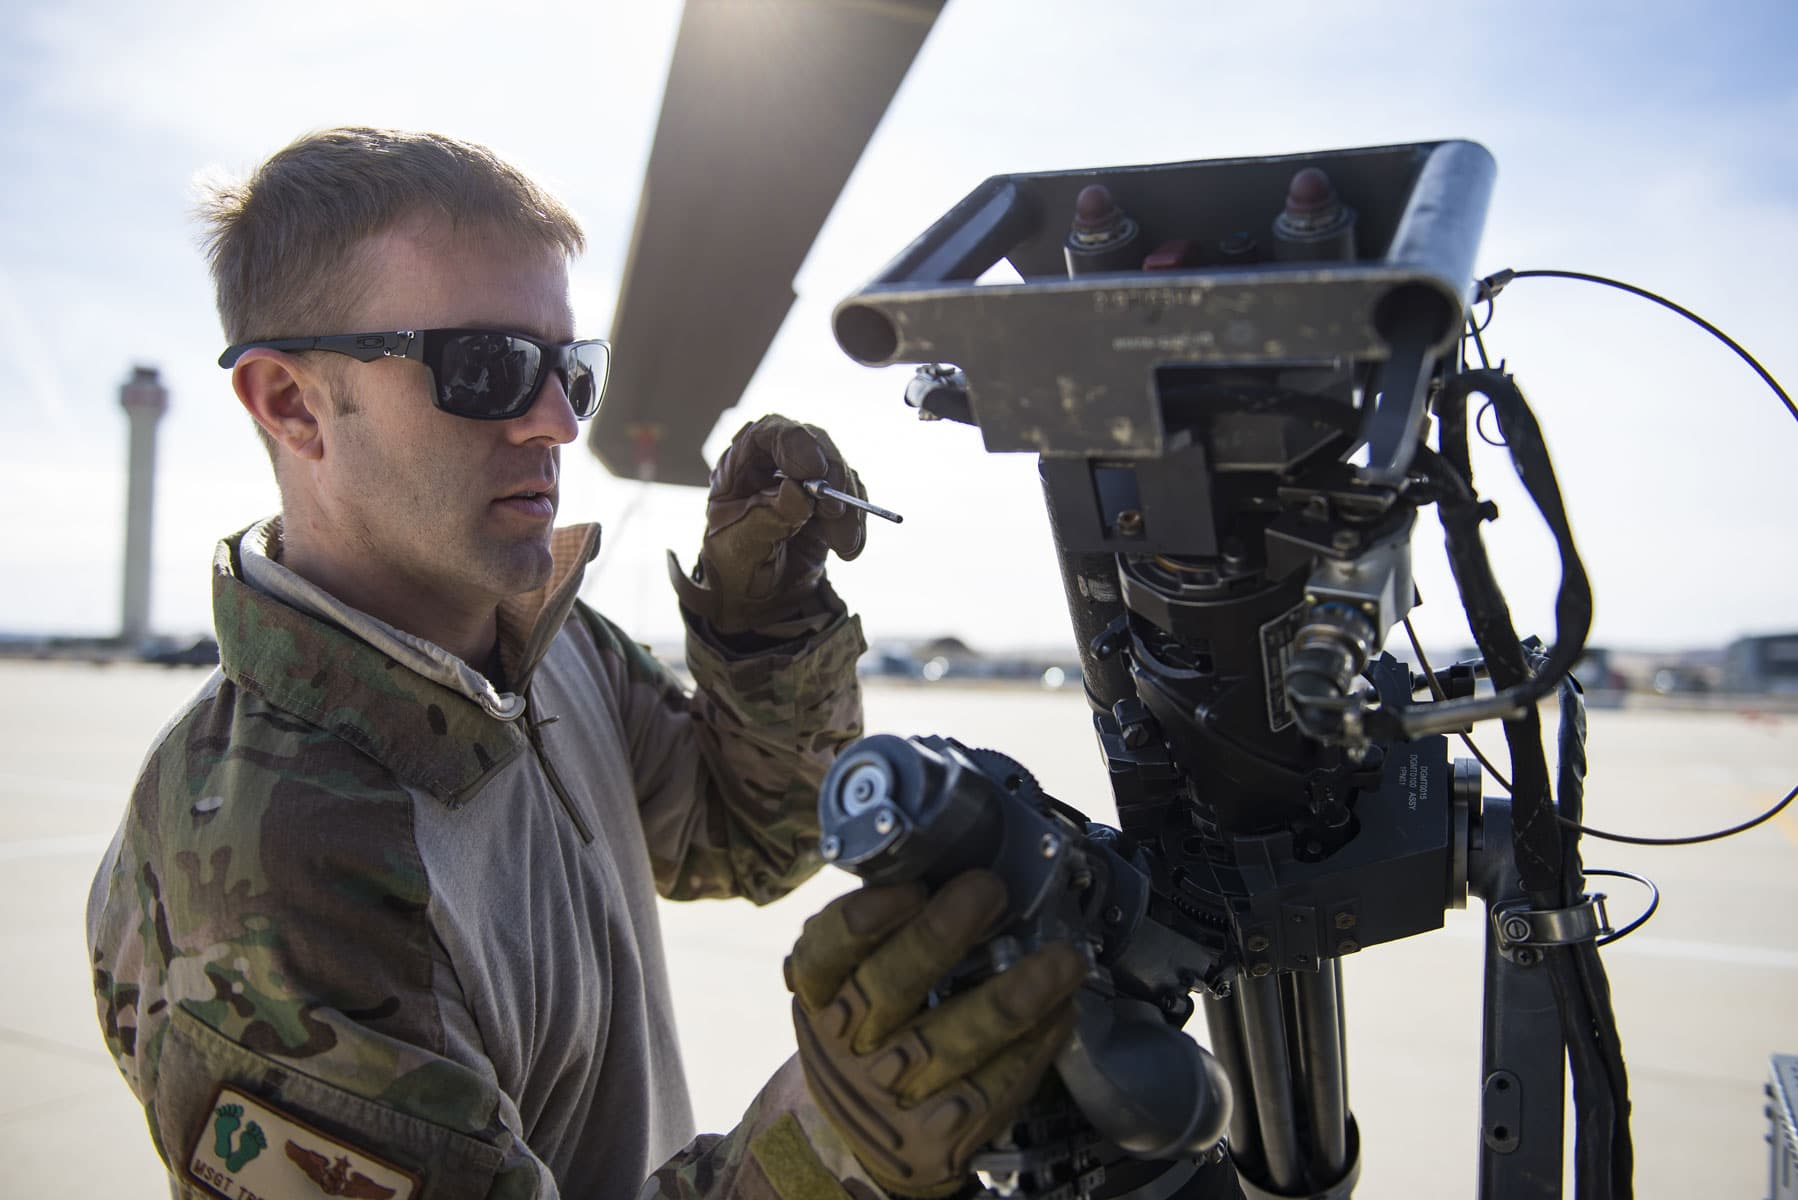 Master Sgt. Trevor Stevens, an evaluator flight engineer from the 943rd Rescue Group, inspects an M134 minigun attached to a HH-60G Pave Hawk helicopter, at Gowen Field, Idaho, during pre-deployment training for the 305th Rescue Squadron.